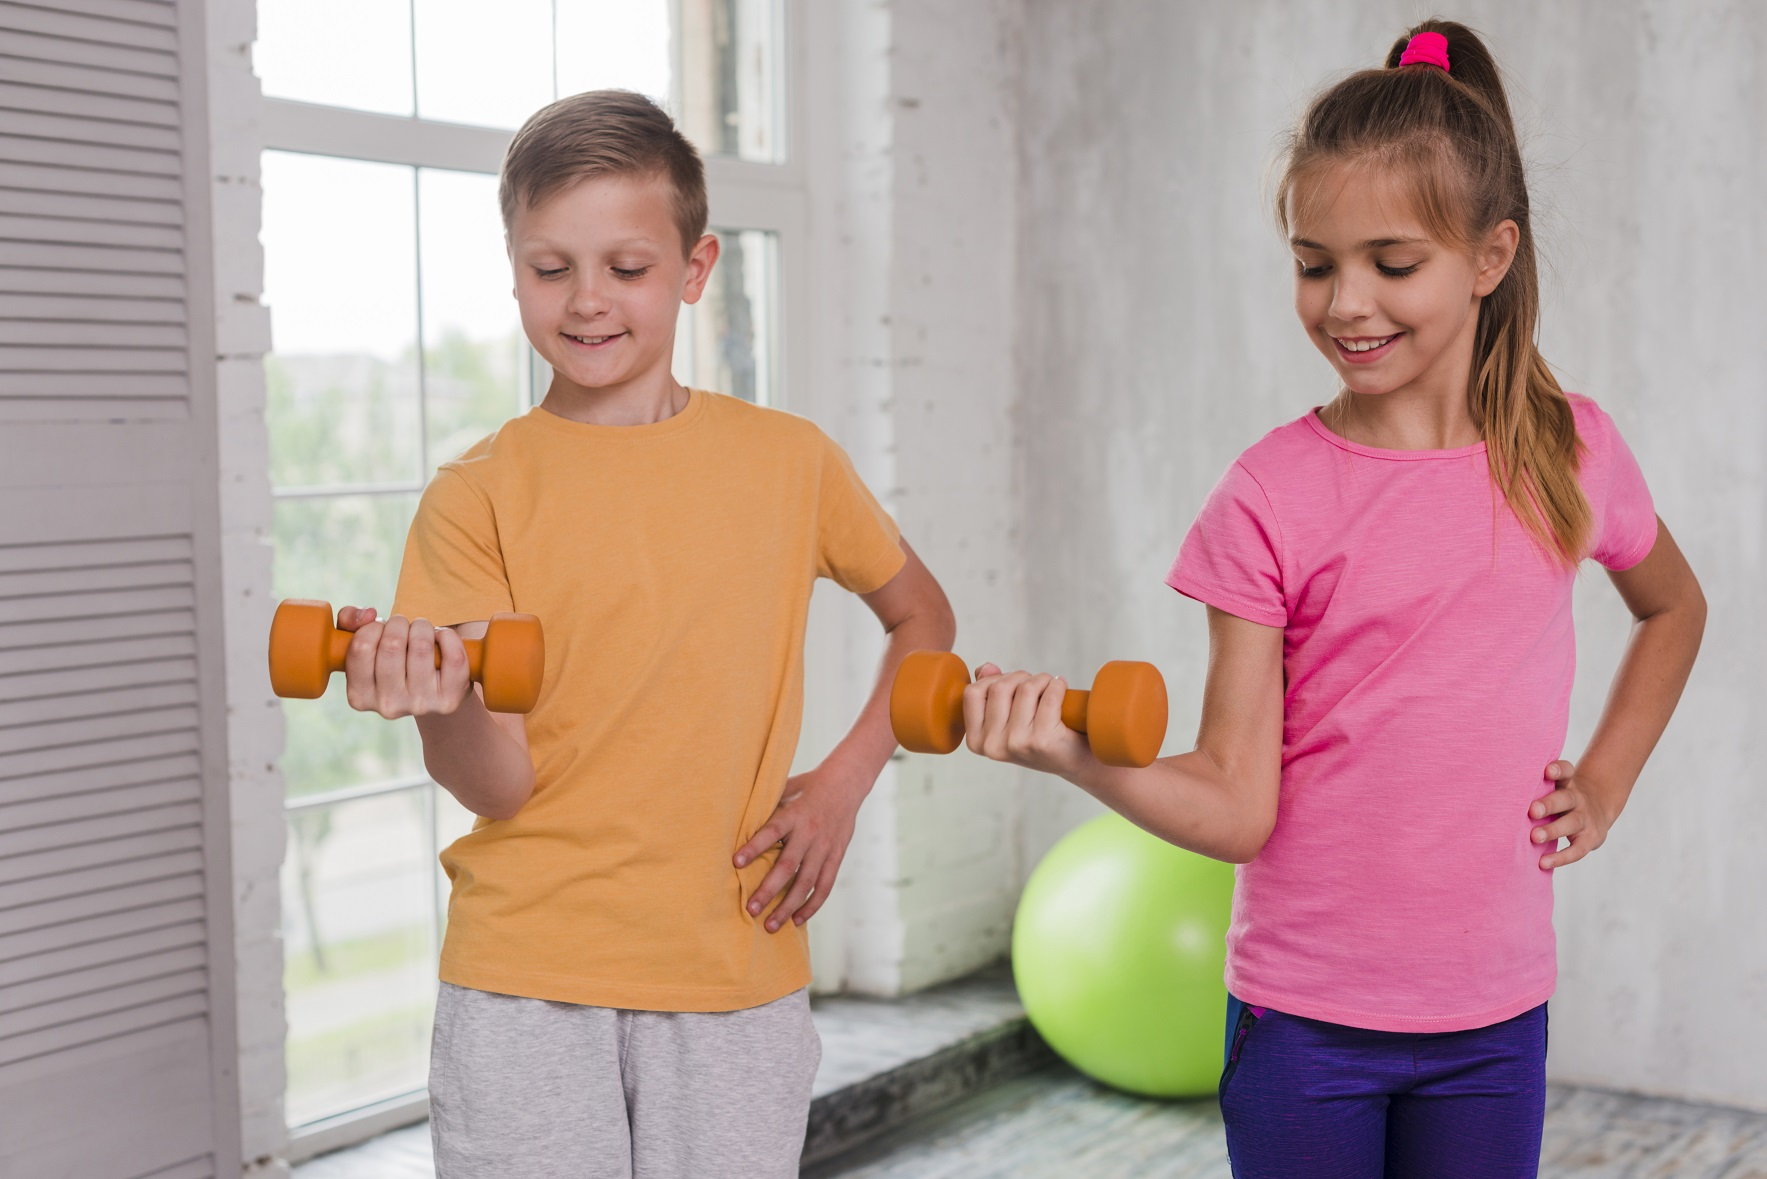 small-smiling-boy-girl-with-hand-hips-exercising-with-dumbbells